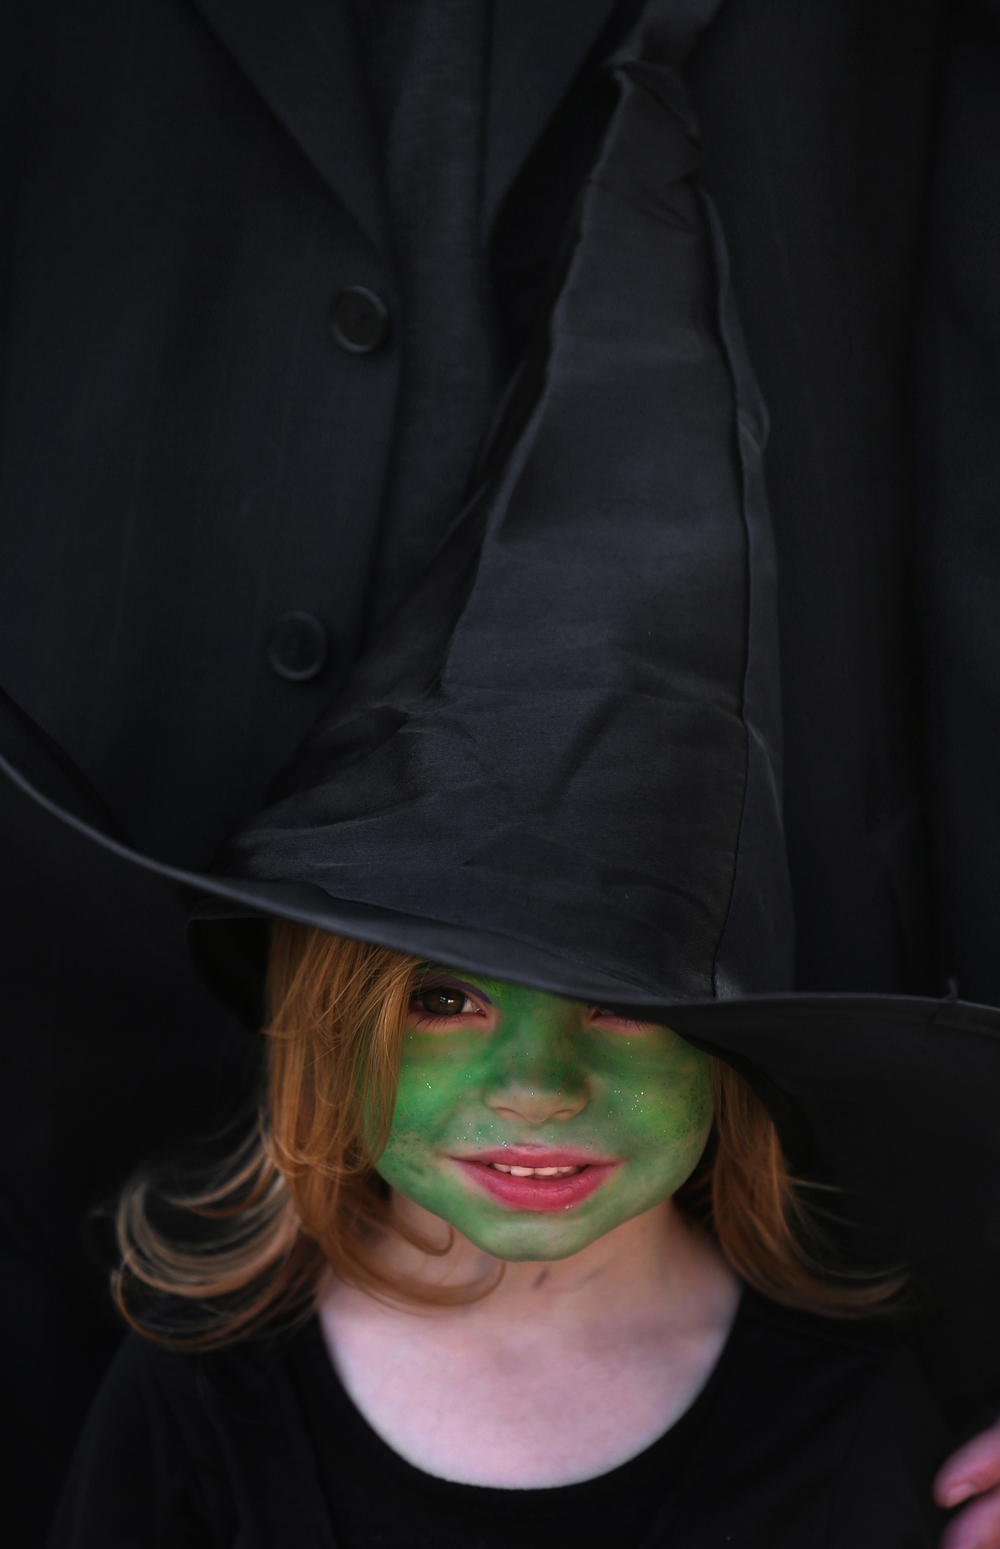 Even with luminous green makeup, five-year-old Sophia Stark of Pawnee insisted folks know she was a good witch. Henson Robinson Zoo at Lake Springfield hosted the annual Zoolie Ghoulie event this weekend, in which hundreds of little visitors along with some grown-ups along for the ride-all wearing their Halloween finest- gave the regular animal inhabitants a run for their attention. Herewith, a bakers-dozen of costumed zoolie ghoulies photographed on Sunday afternoon, Oct. 25, 2015, which works out to a frightful 13. David Spencer/The State Journal-Register